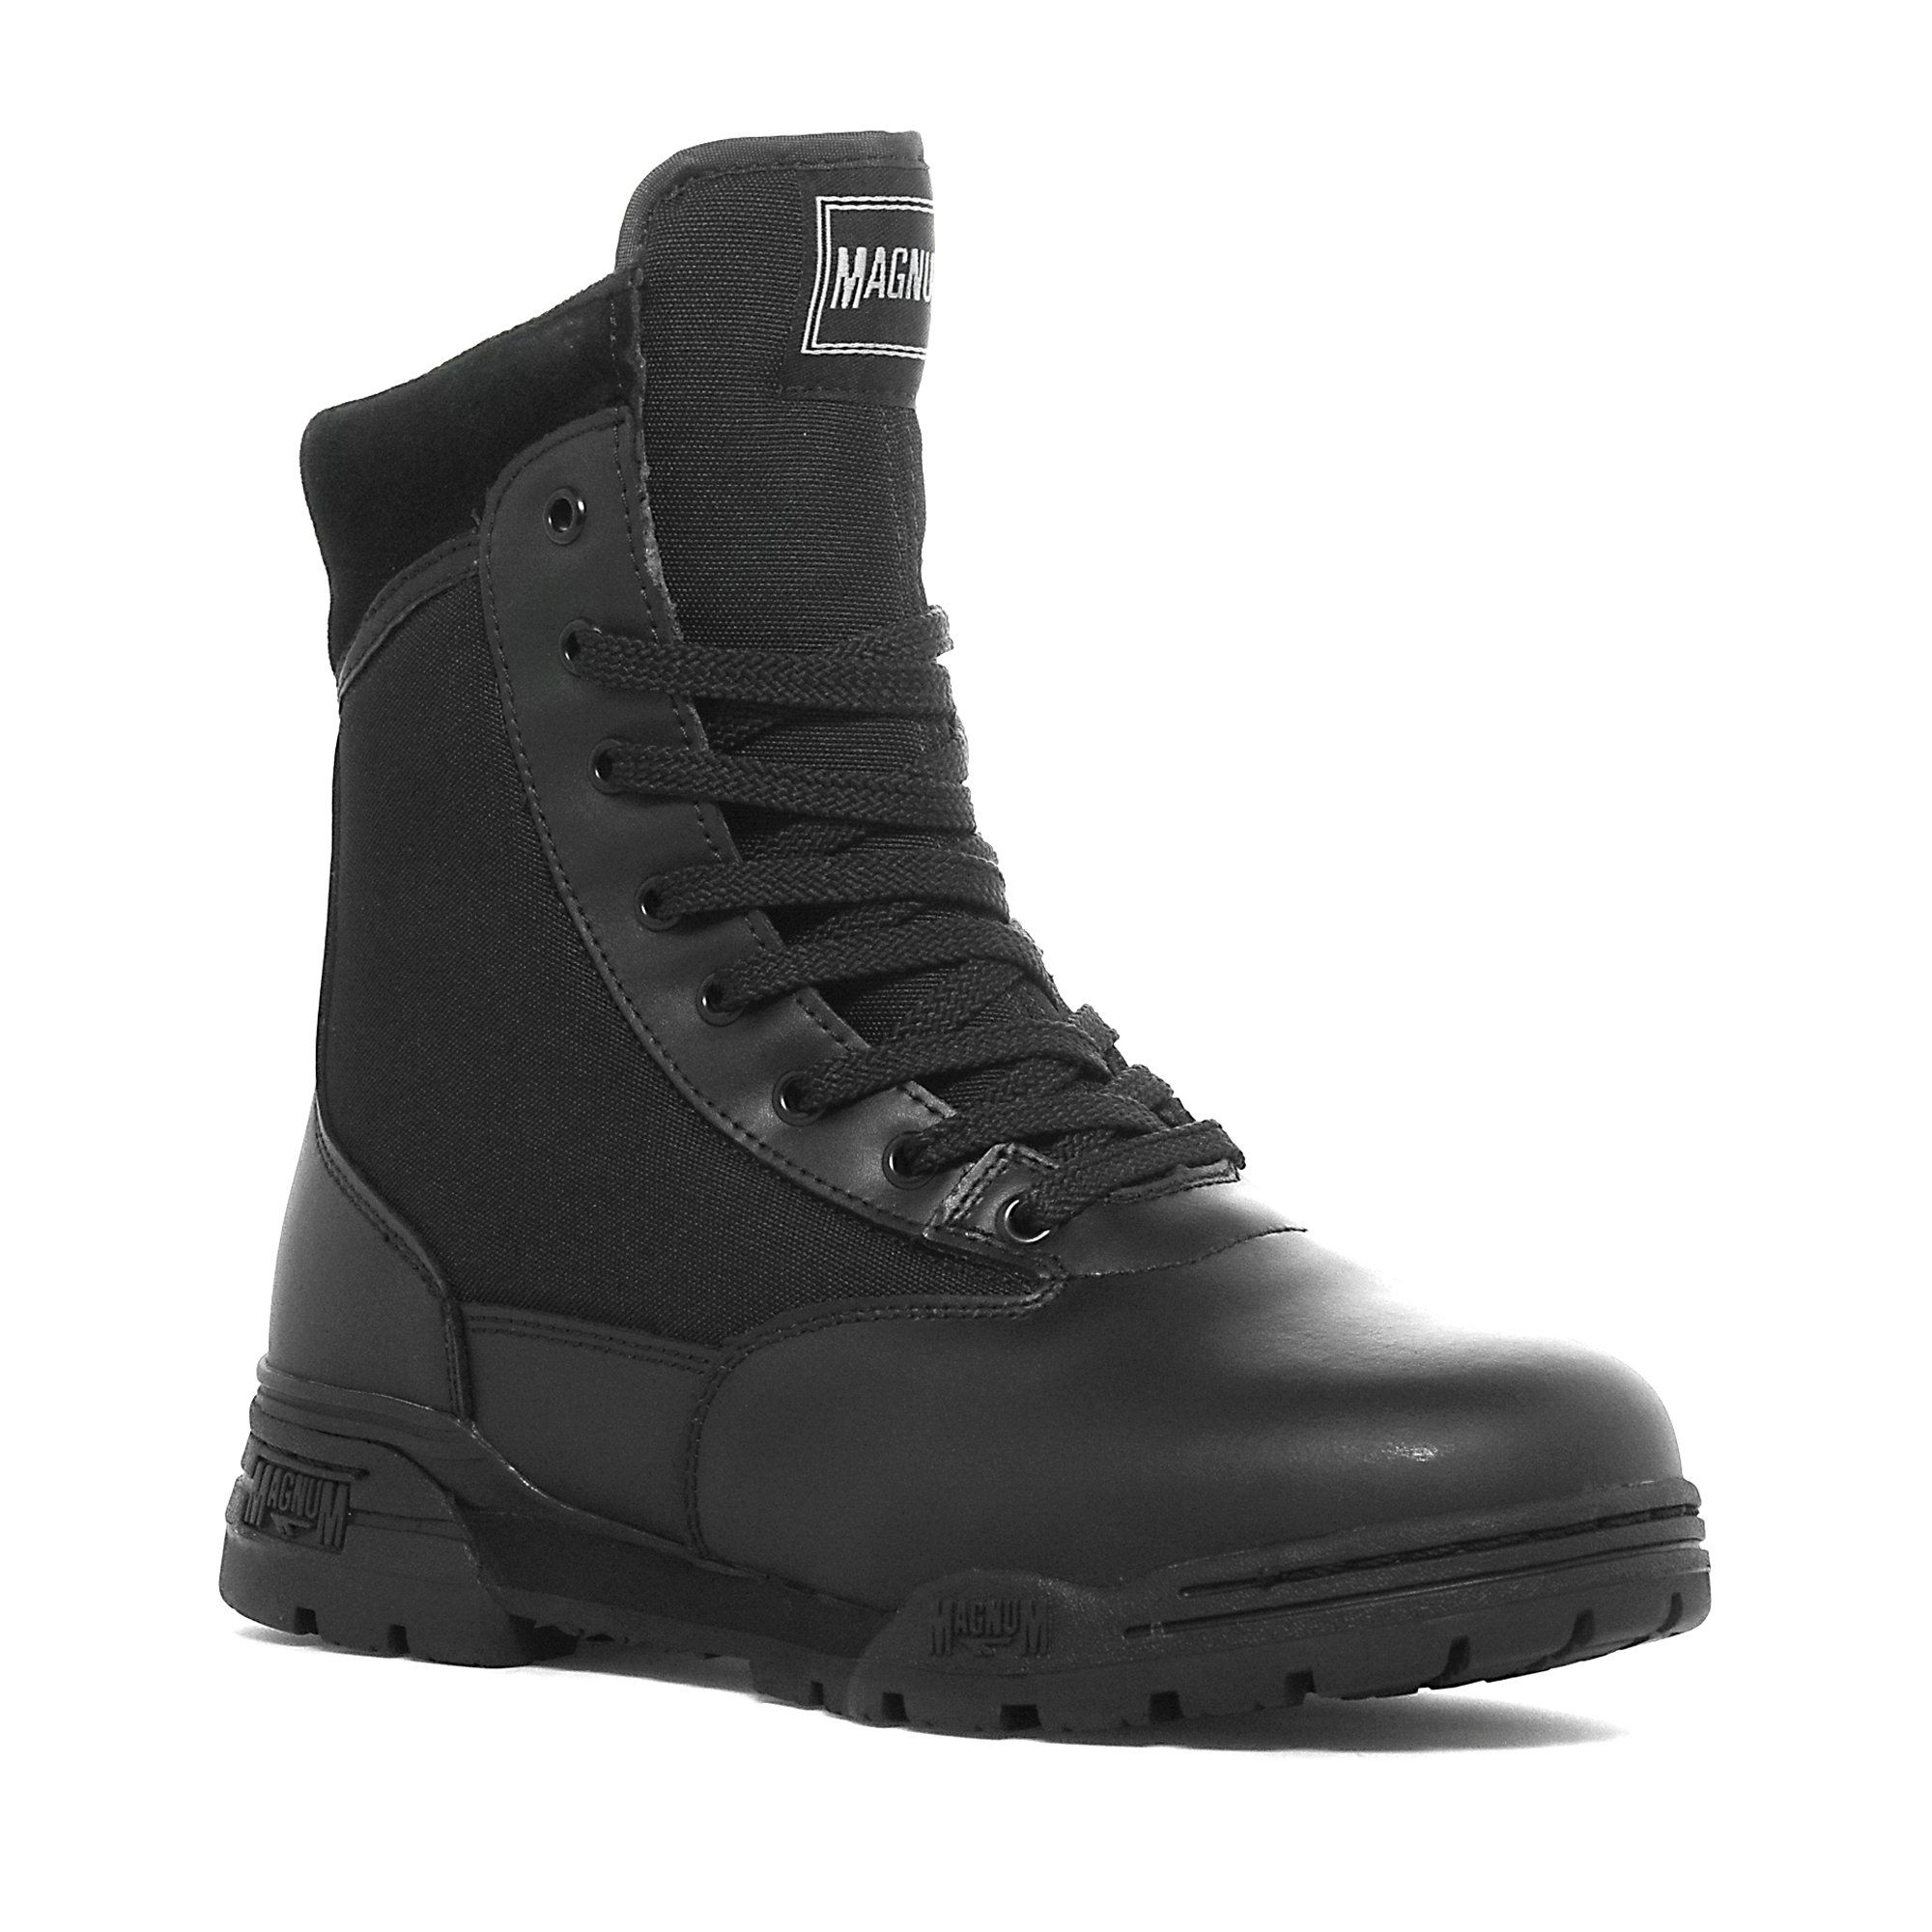 MAGNUM Men's Classic Industrial Work Boots